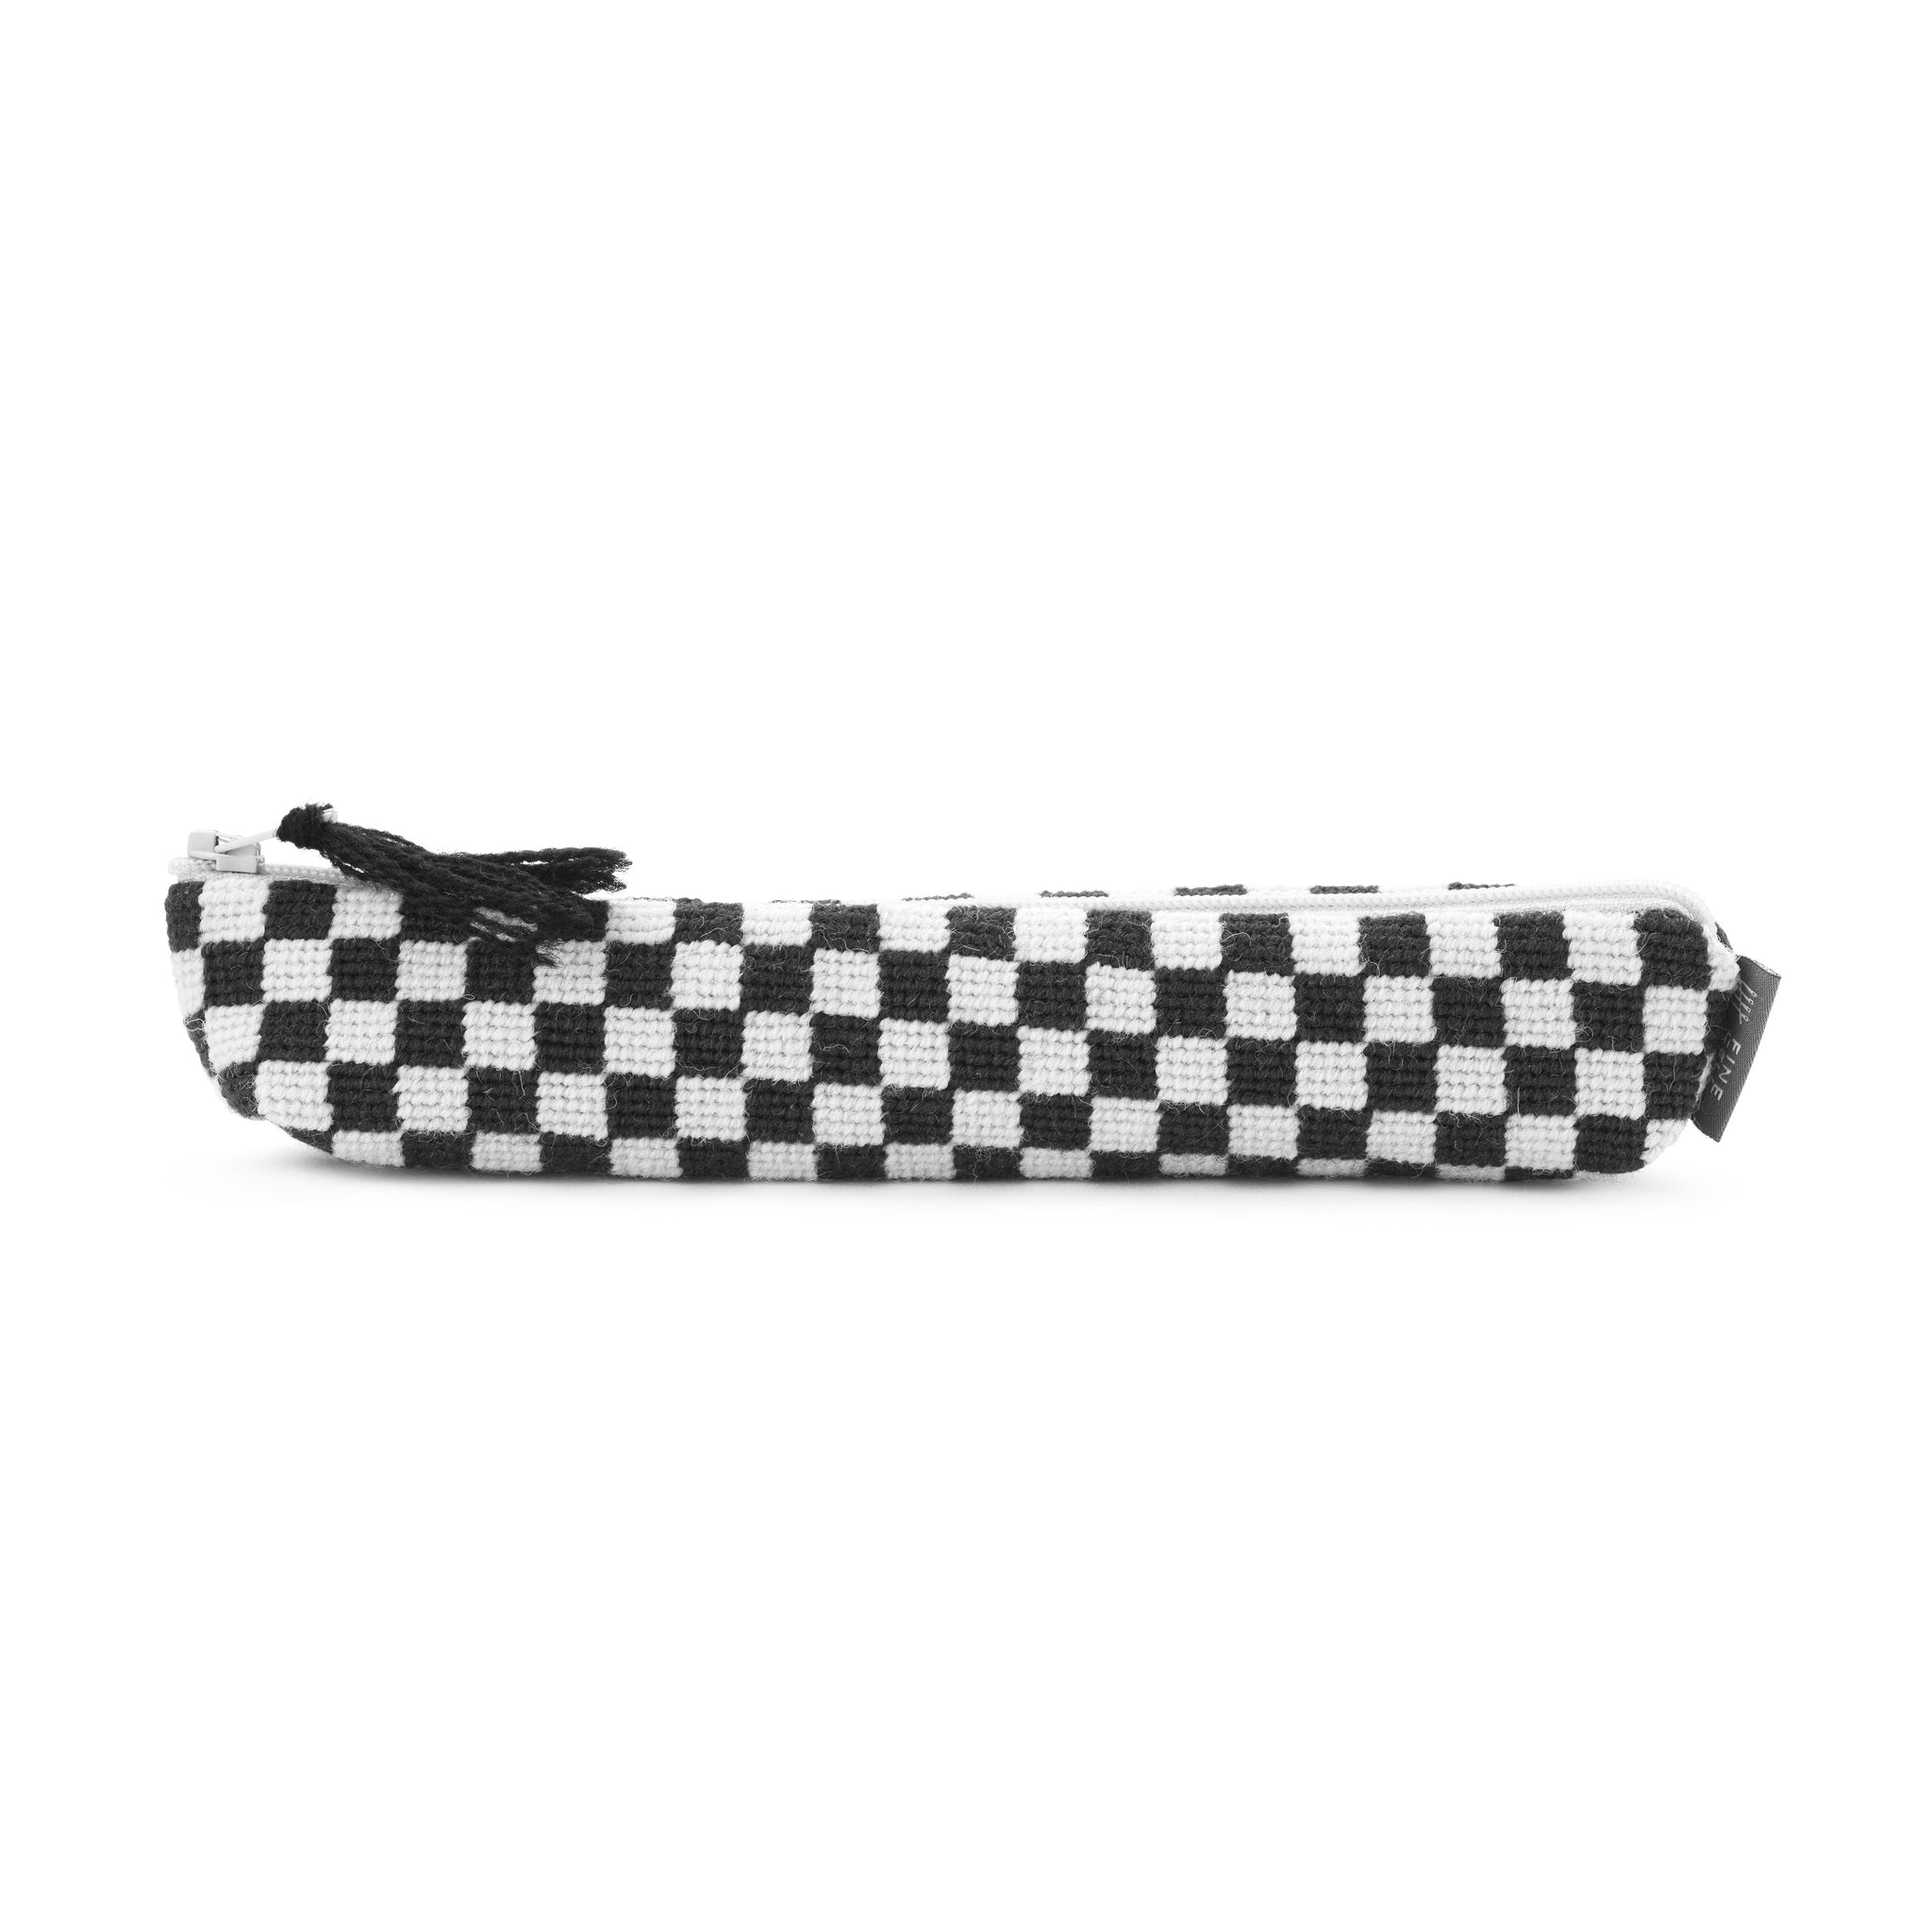 Silverstone Chequerboard Needlepoint Pencil Case Black and White Cath Kidston for Fine Cell Work